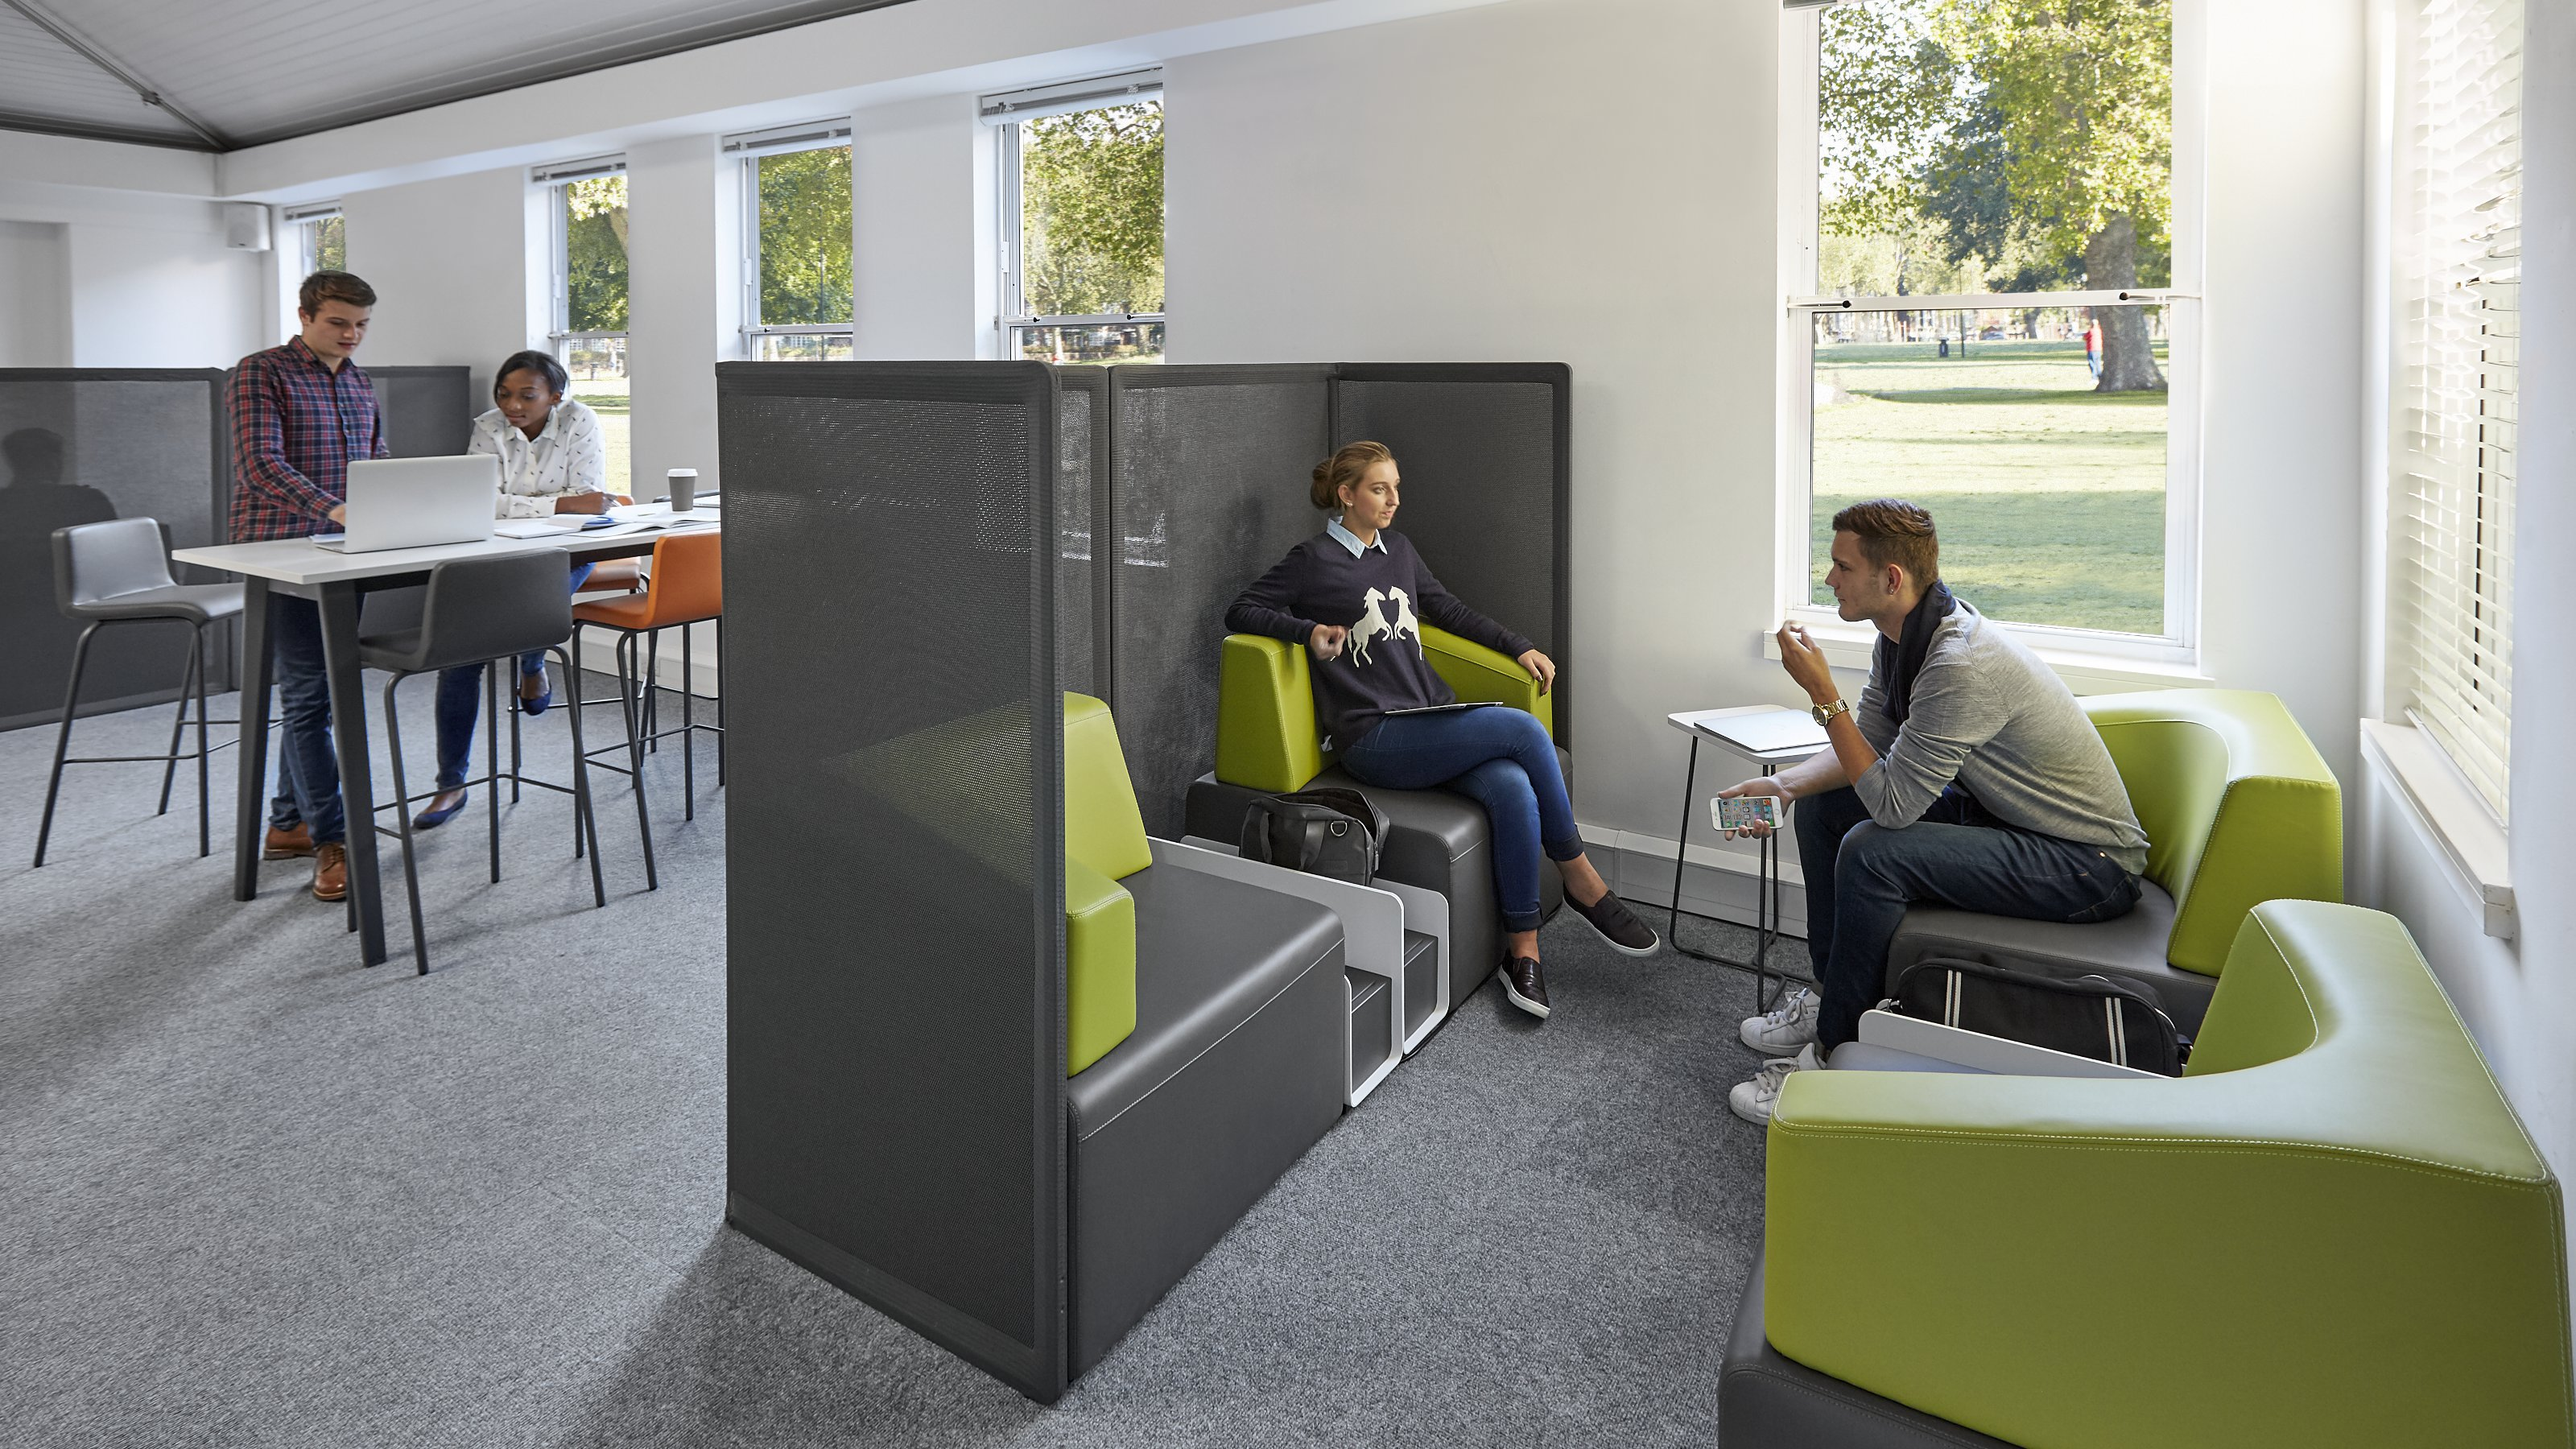 Breakout Spaces For Learning Environments Steelcase